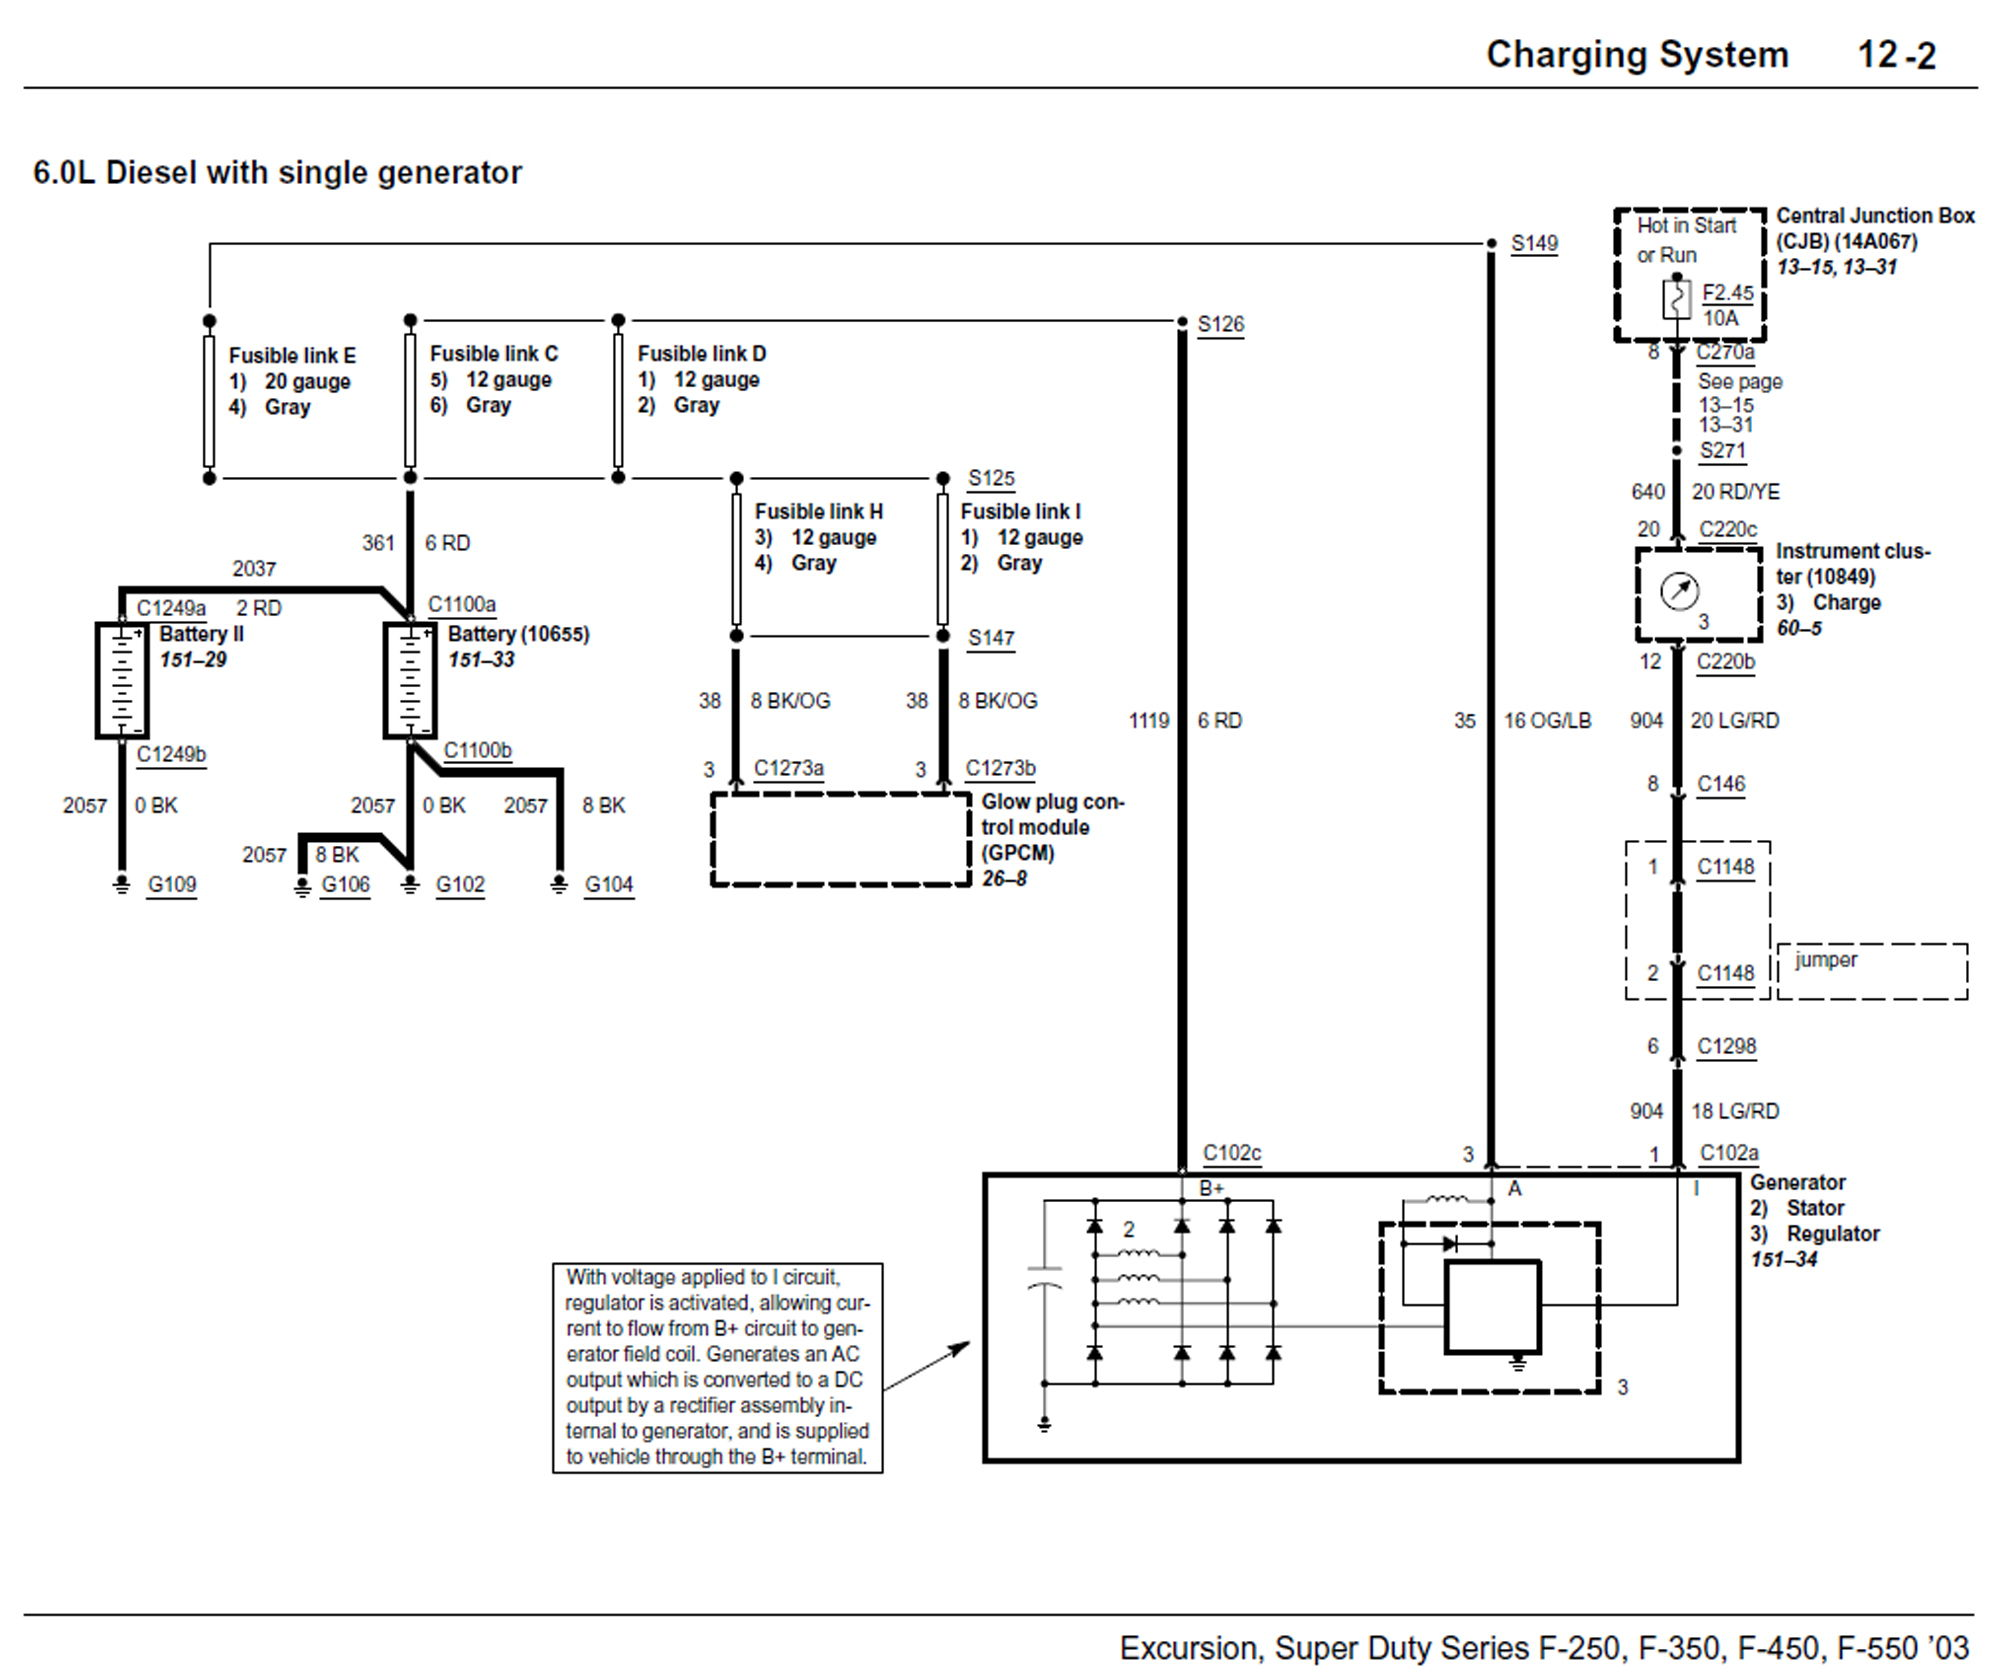 mastercraft wiring diagram wiring diagram and schematics mastercraft prostar wiring diagram mastercraft x2 wiring diagram